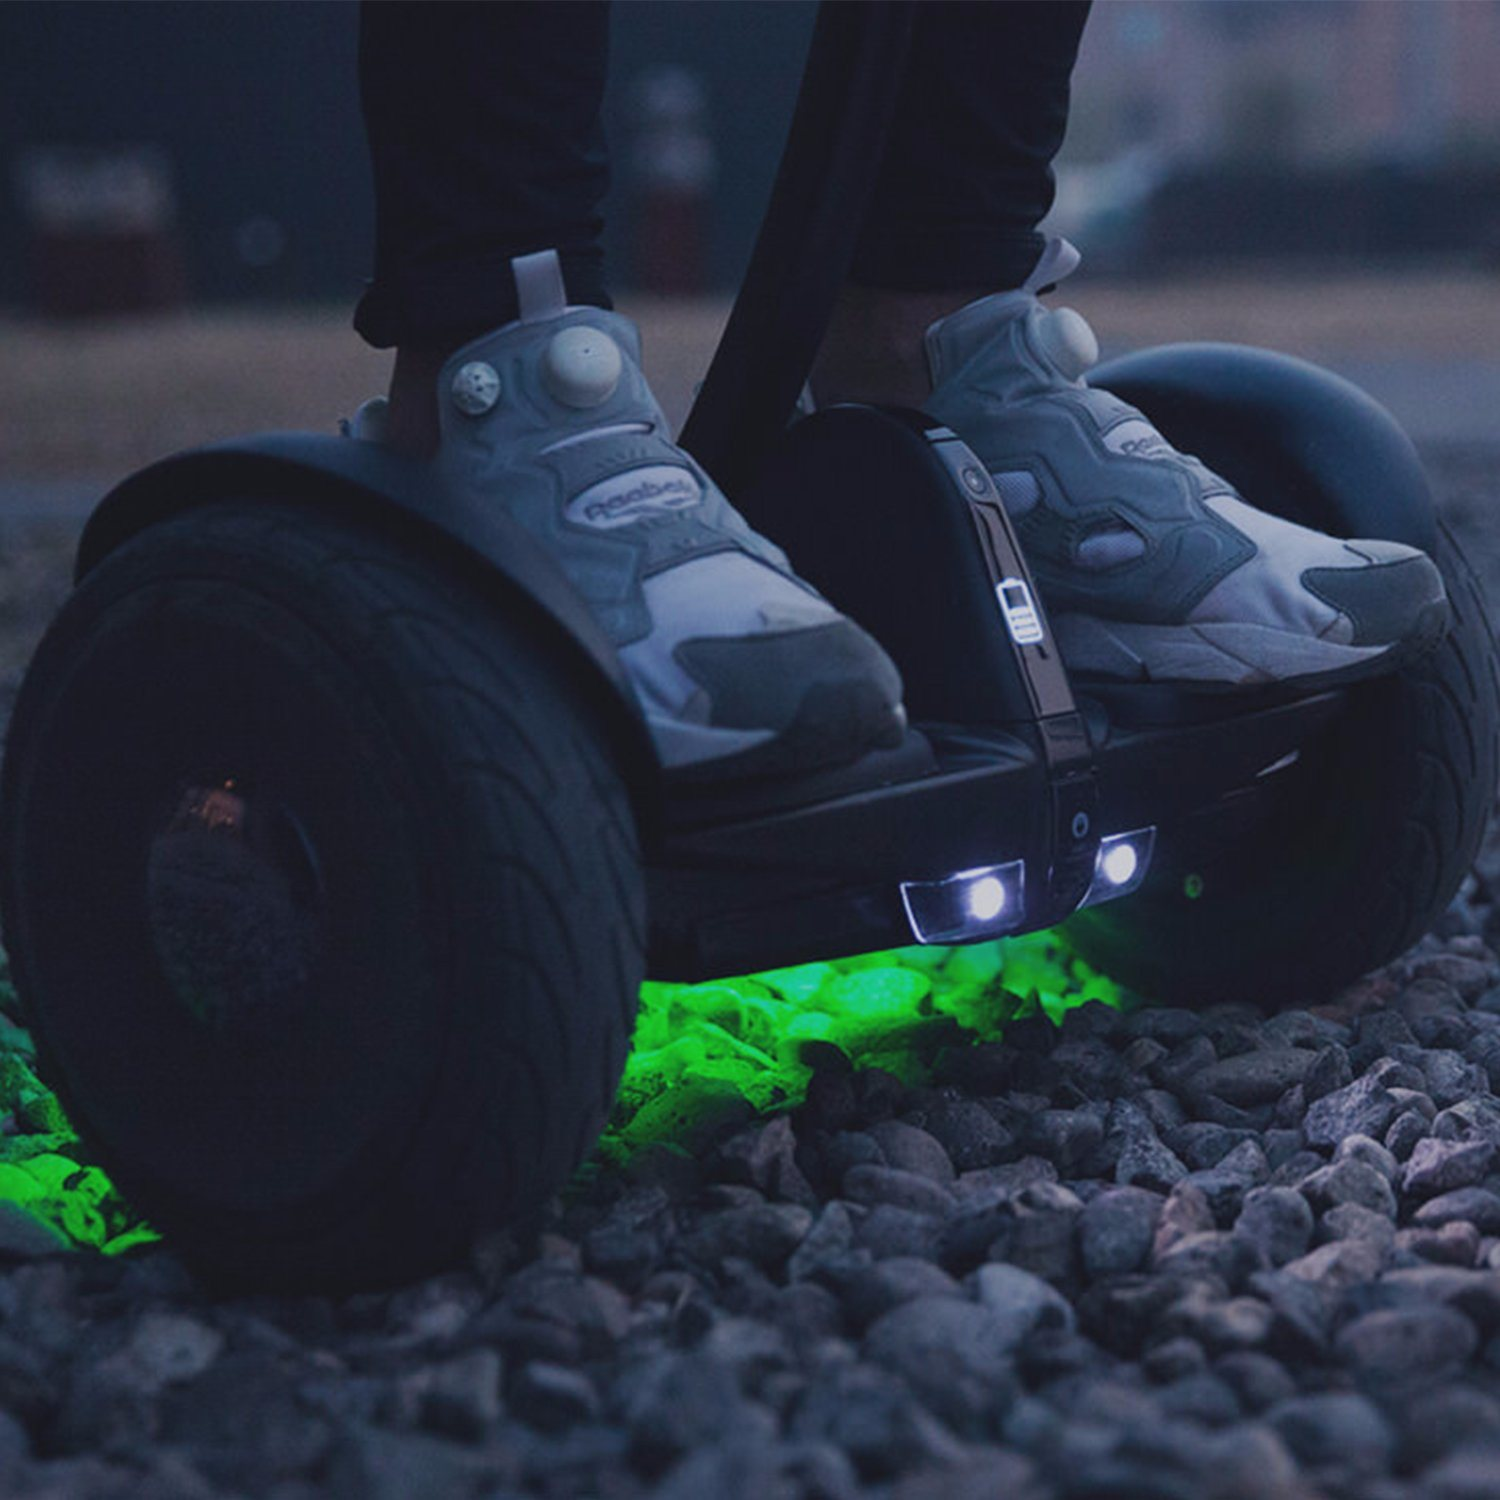 2 Wheel Electric Scooter Manufacturer